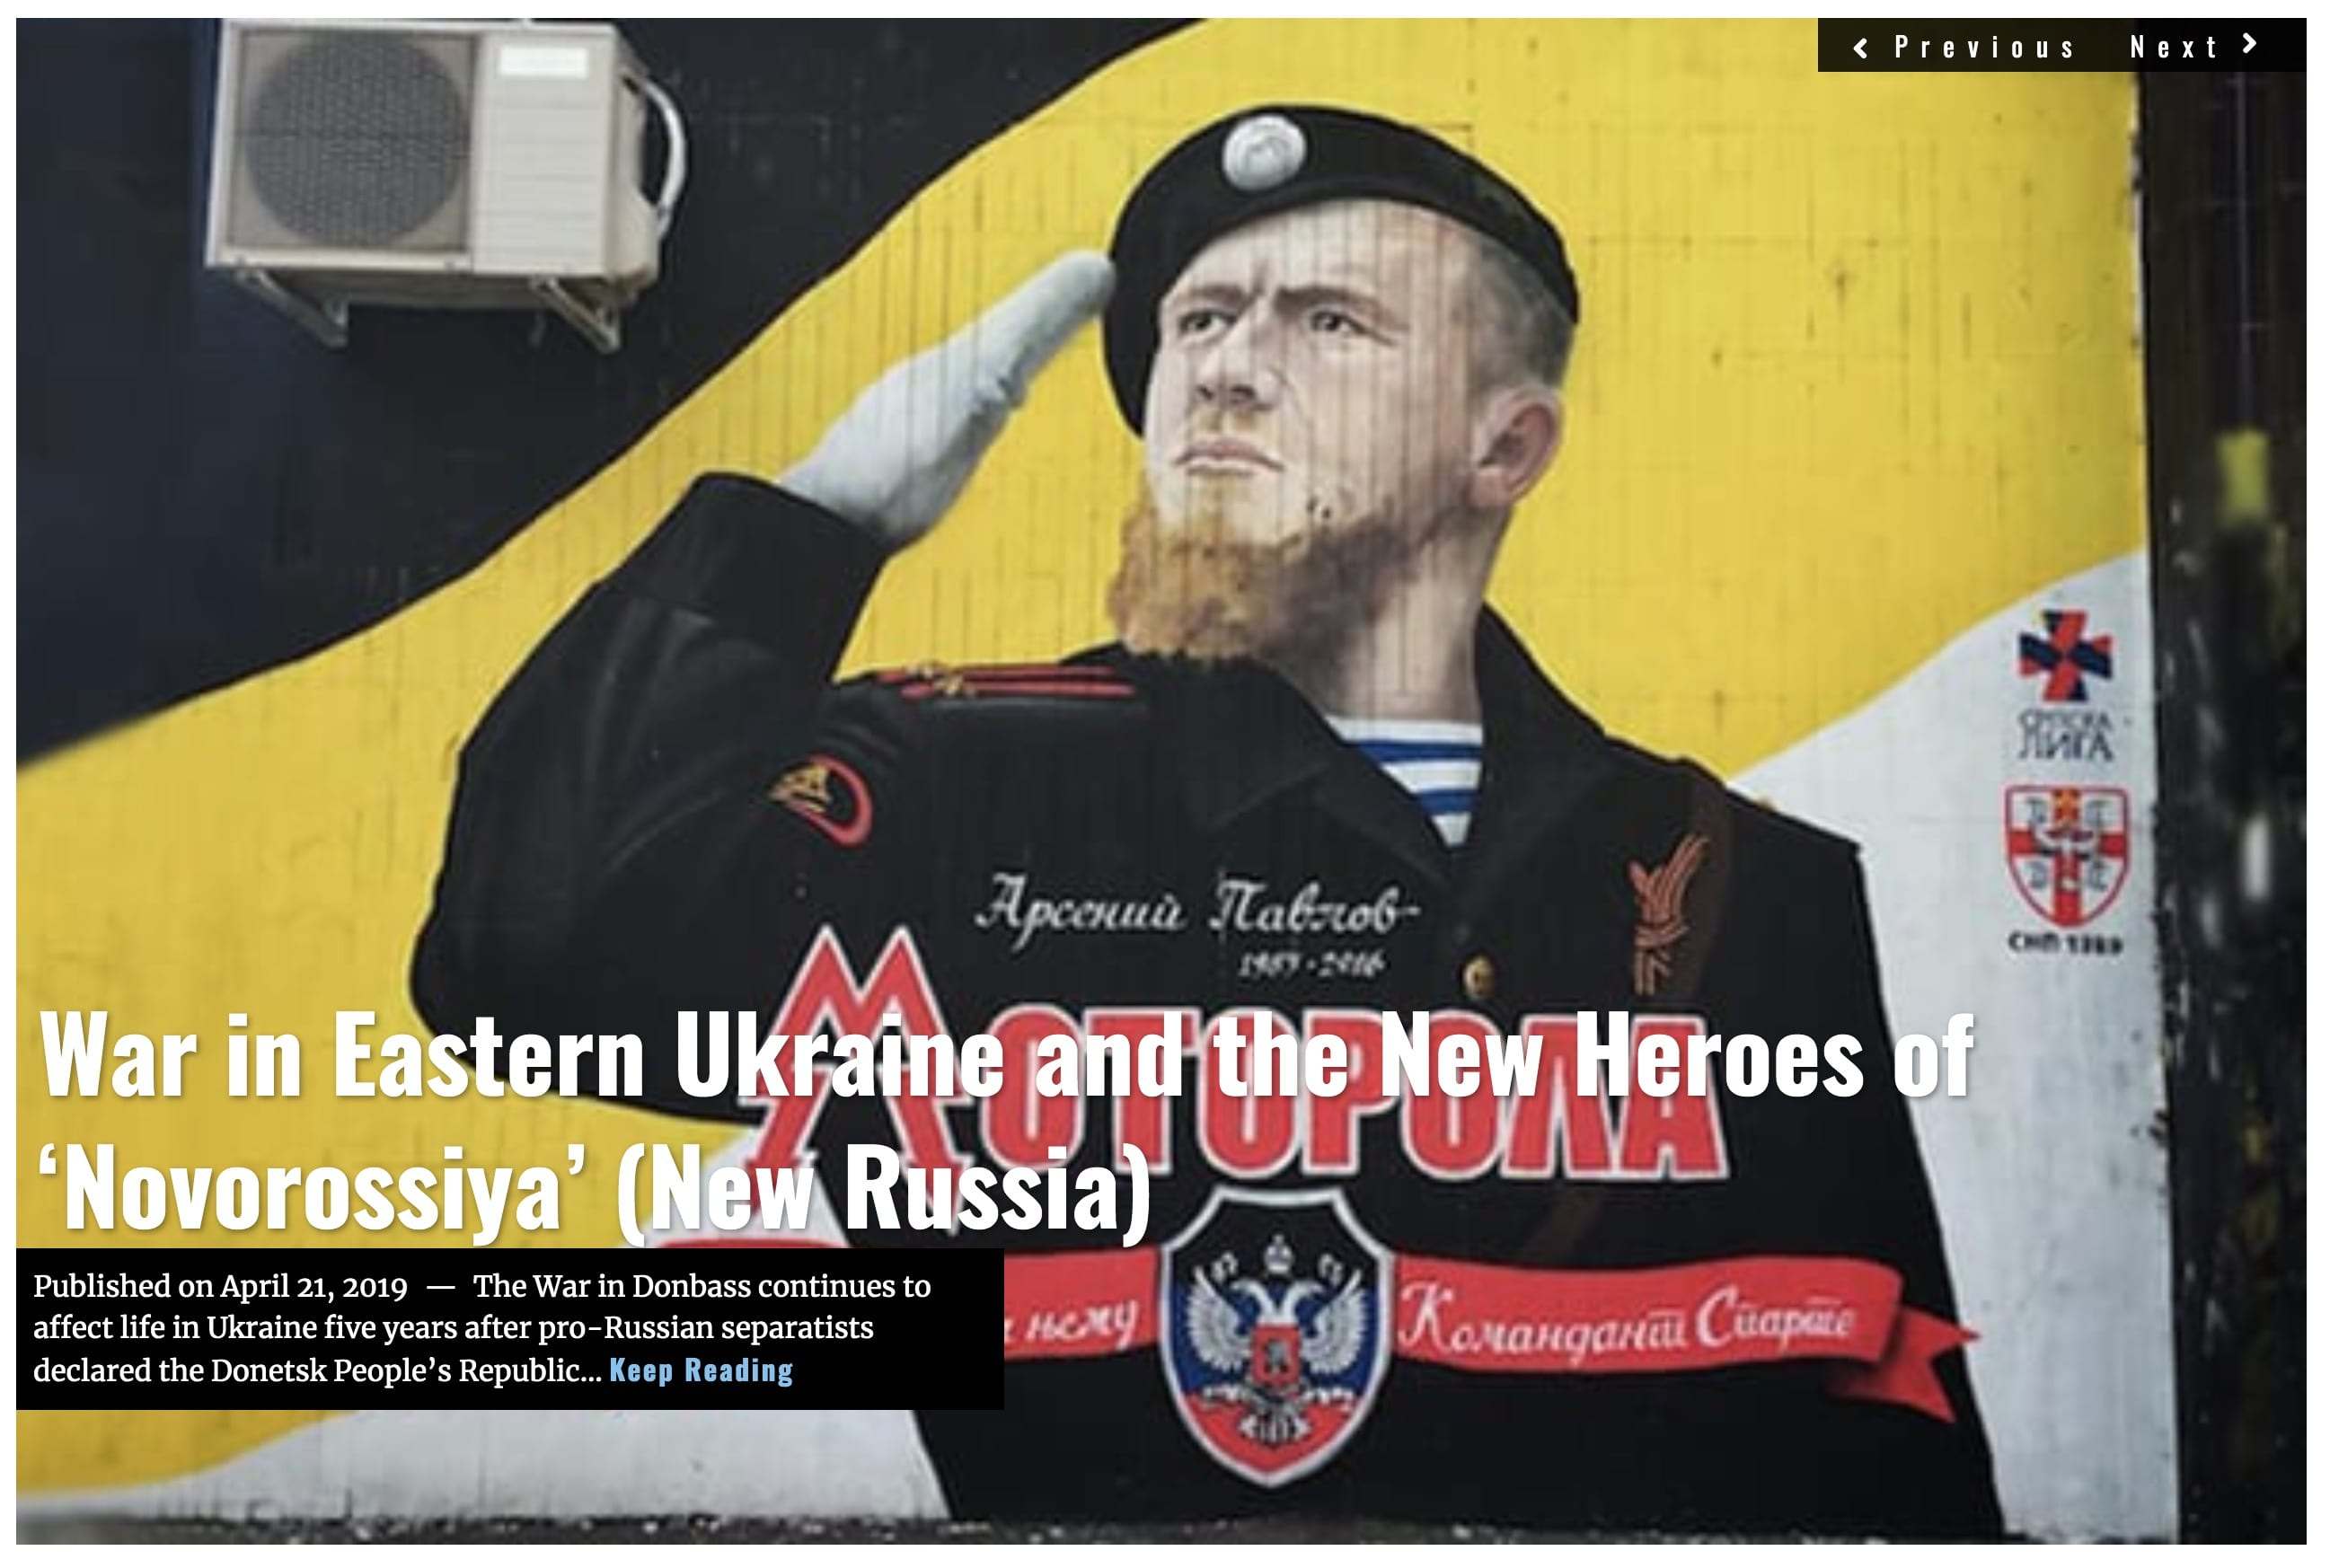 Image War in Eastern Ukraine and the New Heroes of 'Novorossiya' (New Russia)